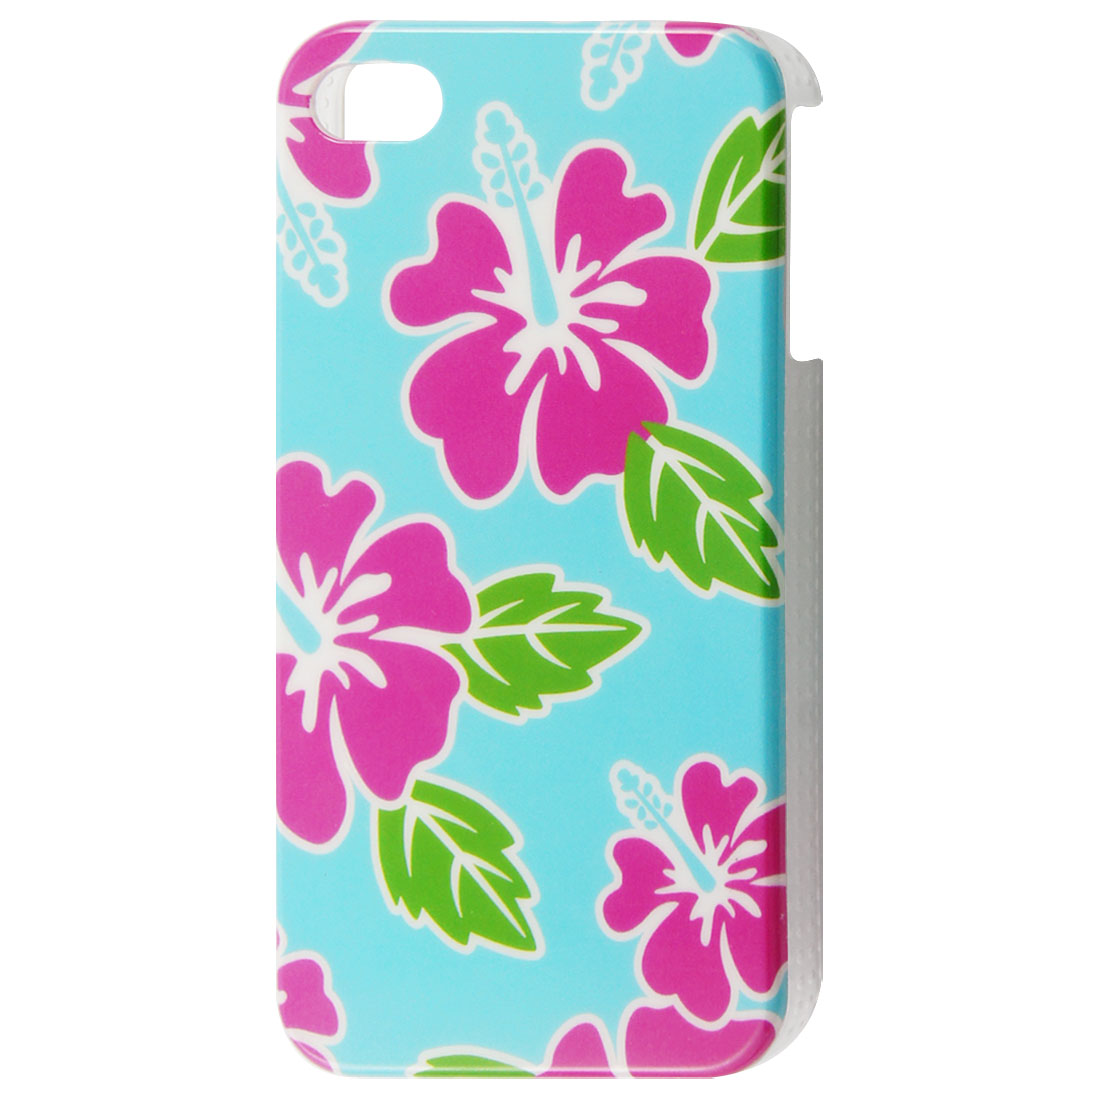 Fuchsia Floral Print Blue Plastic IMD Back Case for iPhone 4 4S 4GS